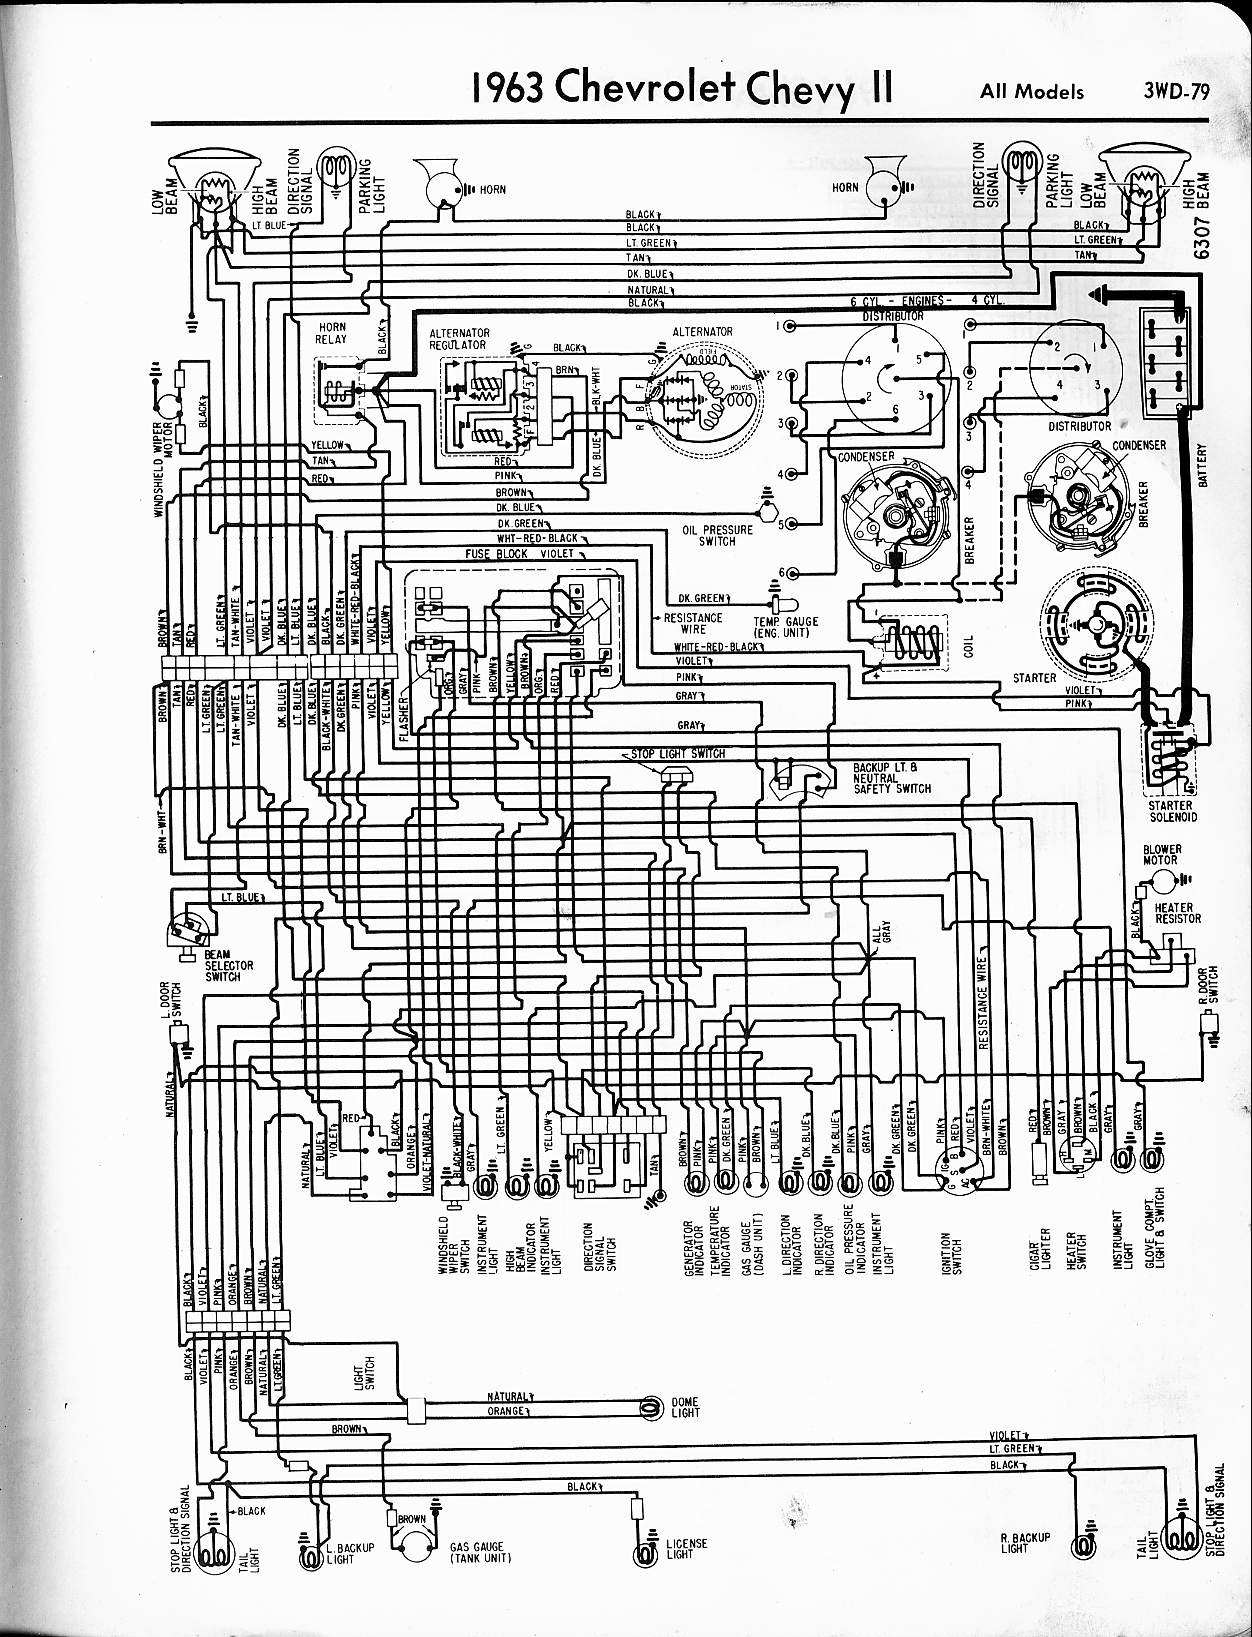 MWireChev63_3WD 079 57 65 chevy wiring diagrams 1970 chevelle dash wiring diagram at panicattacktreatment.co